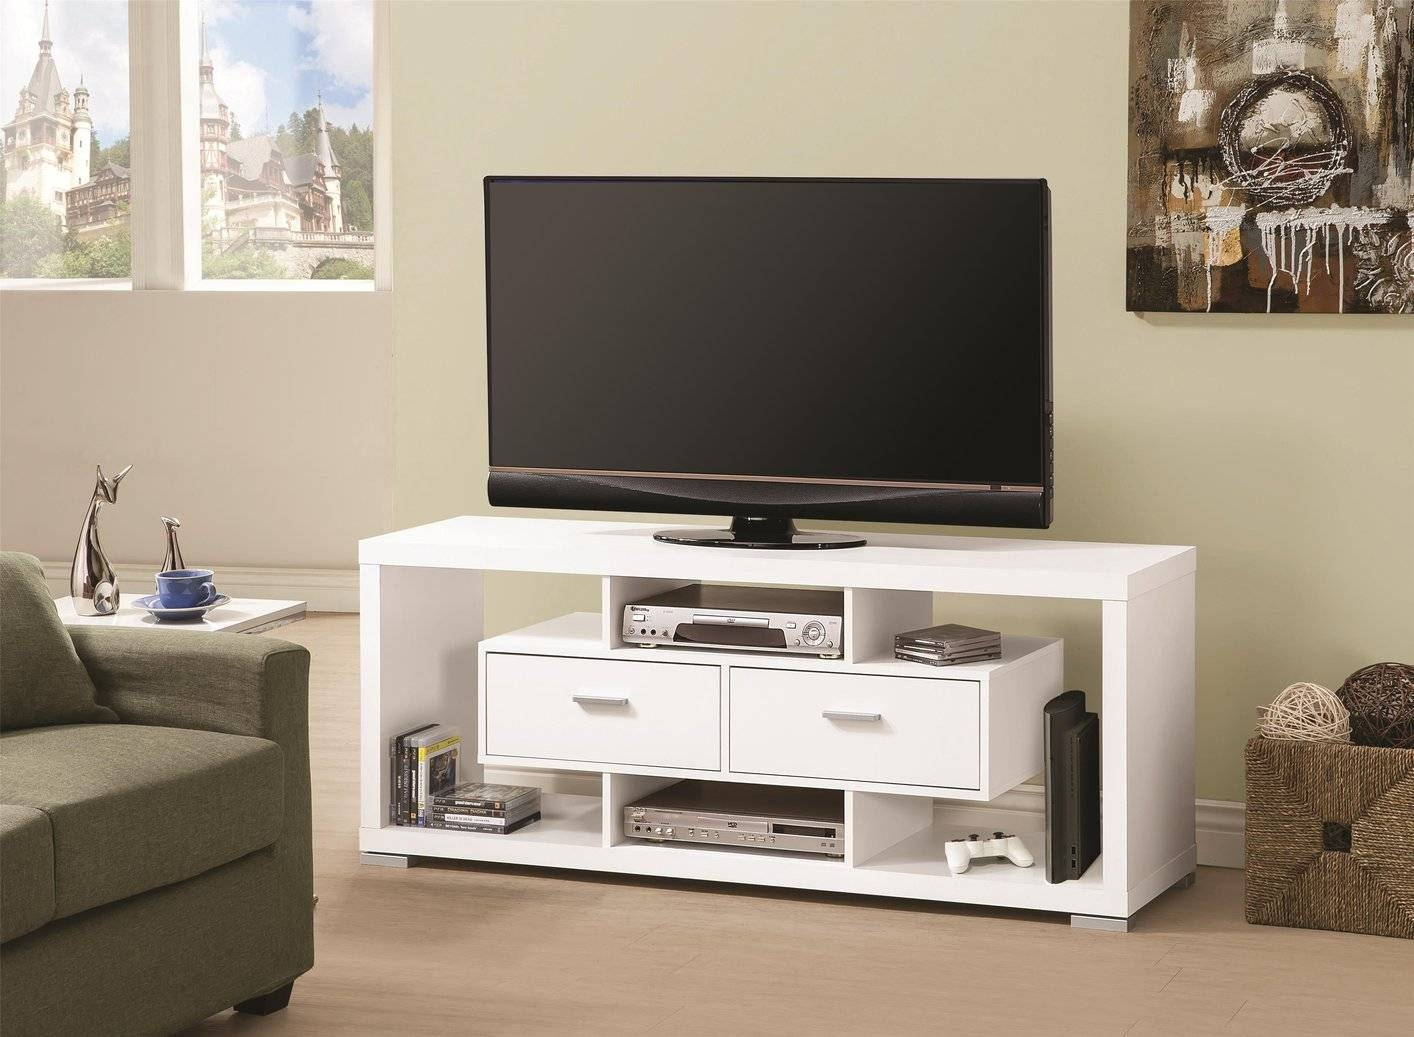 White Wood Tv Stand – Steal A Sofa Furniture Outlet Los Angeles Ca In Cheap Wood Tv Stands (View 14 of 15)